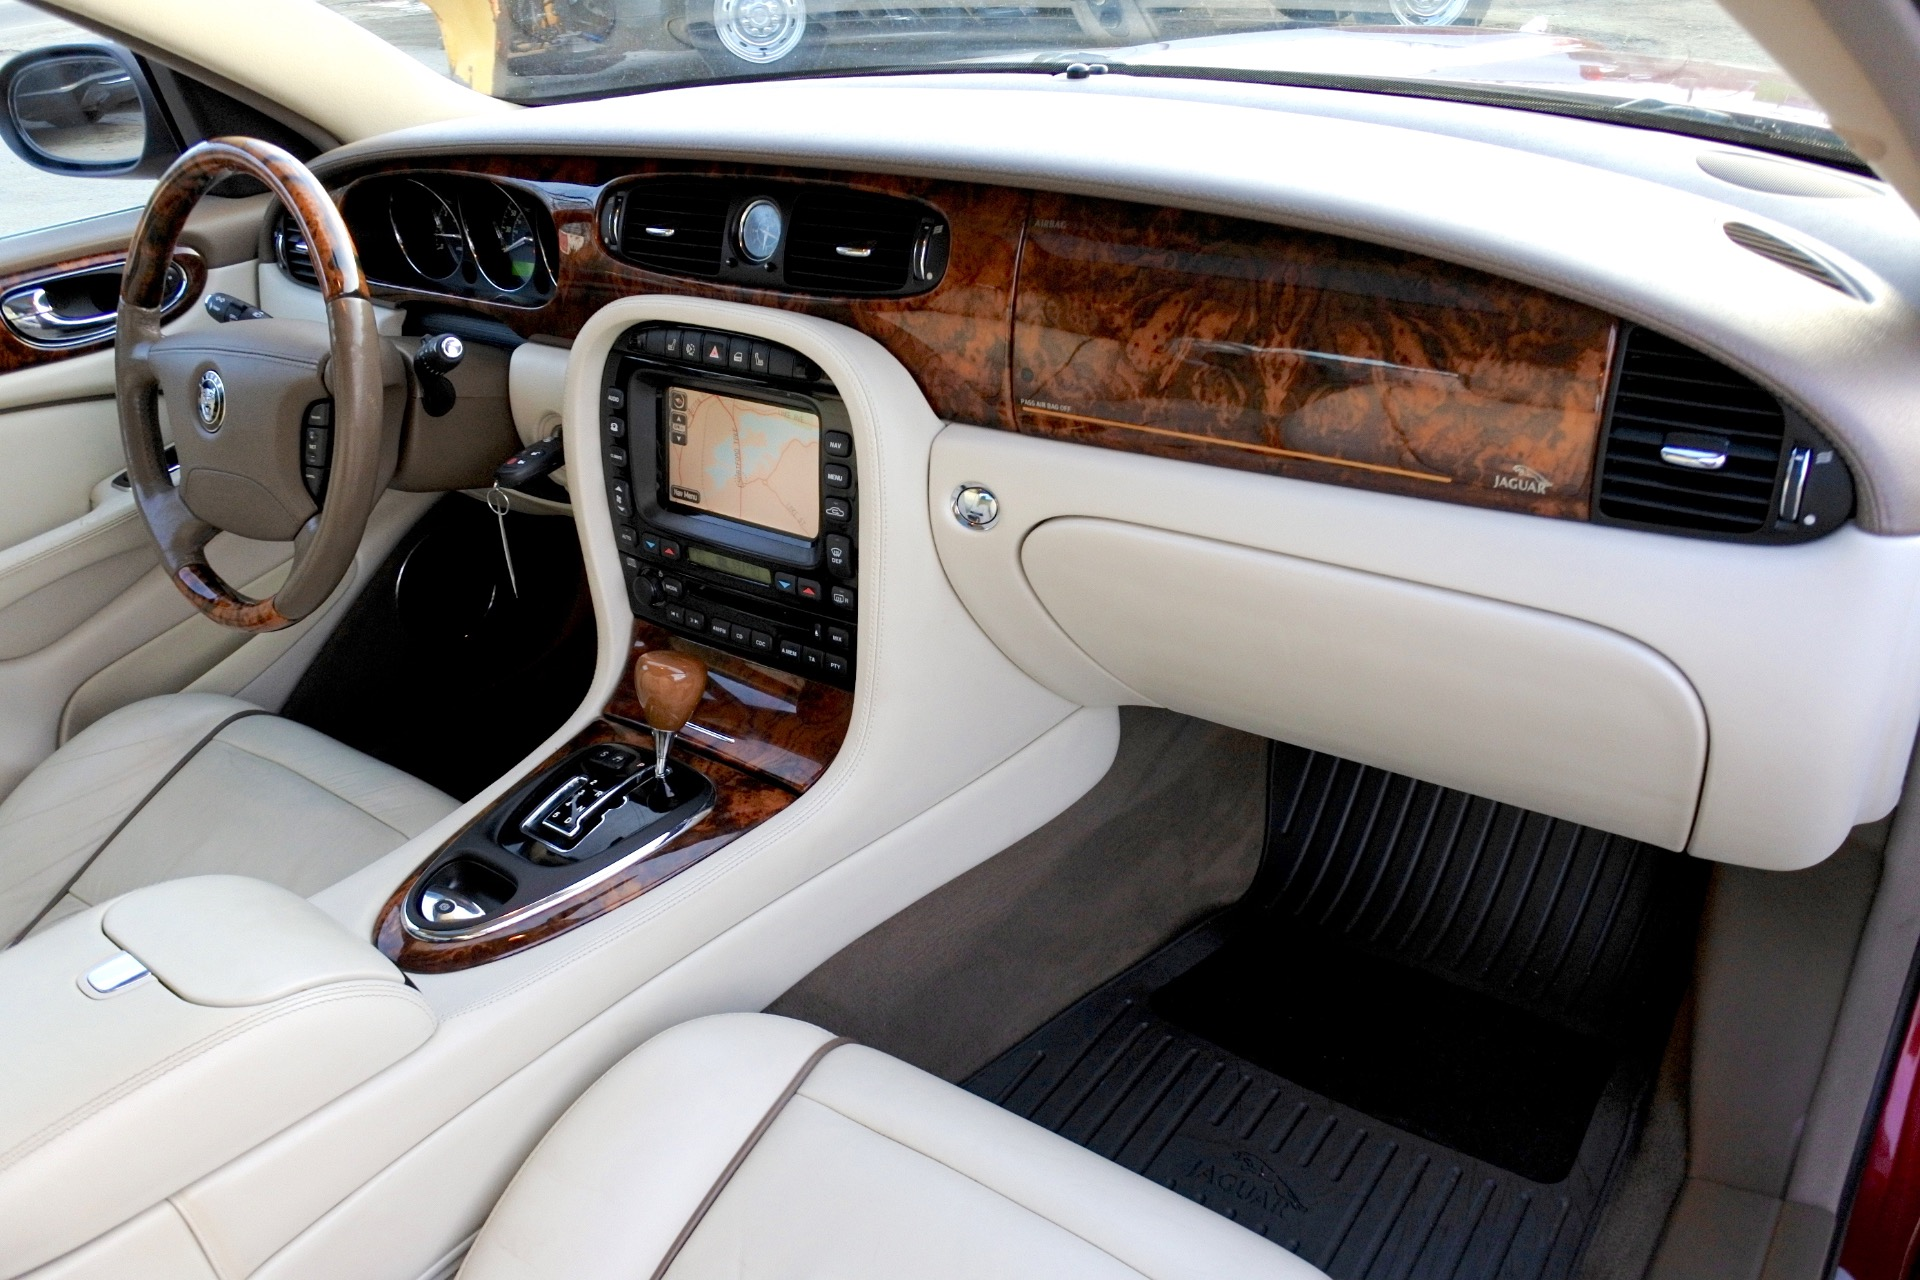 Used 2007 Jaguar Xj l Super V8 Used 2007 Jaguar Xj l Super V8 for sale  at Metro West Motorcars LLC in Shrewsbury MA 21